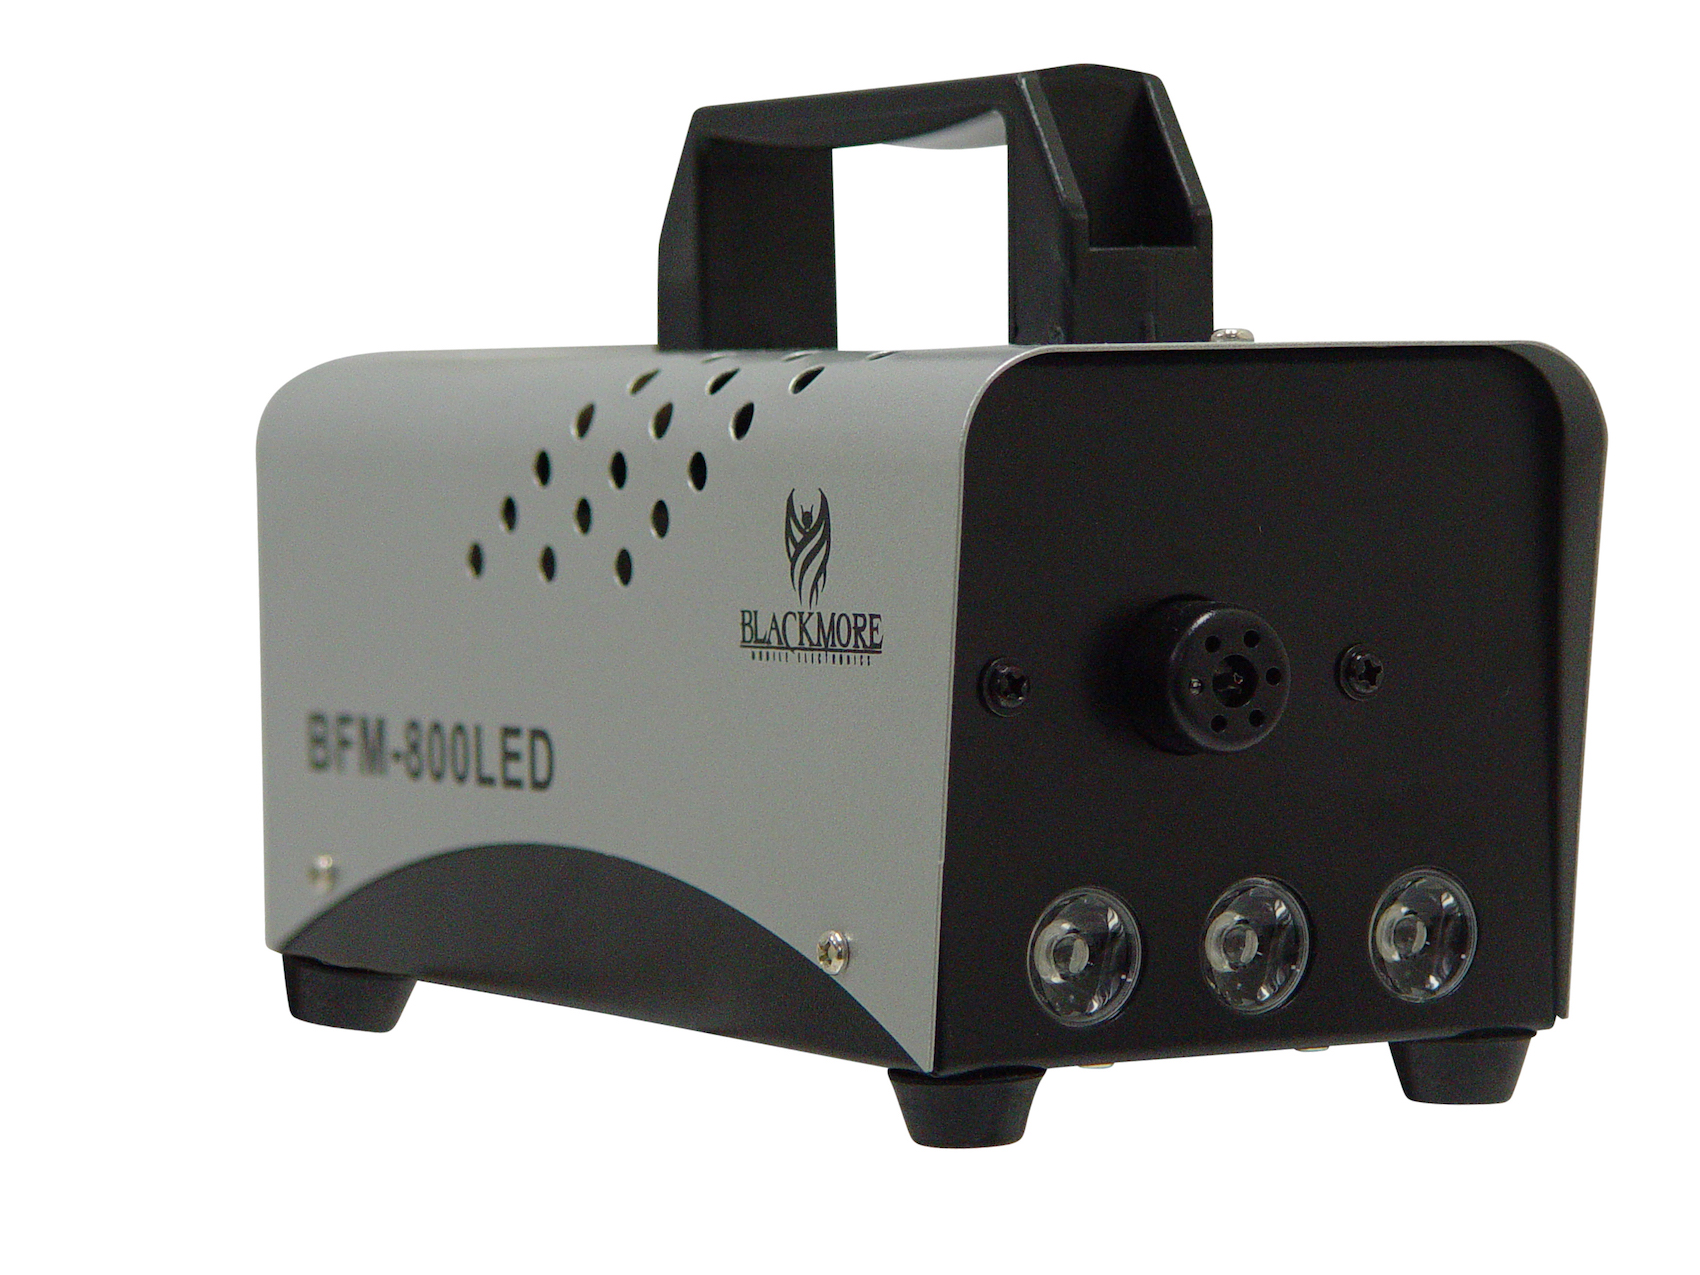 Blackmore Fog Machine 900w with LEDs (BFM-800LD) by Blackmore